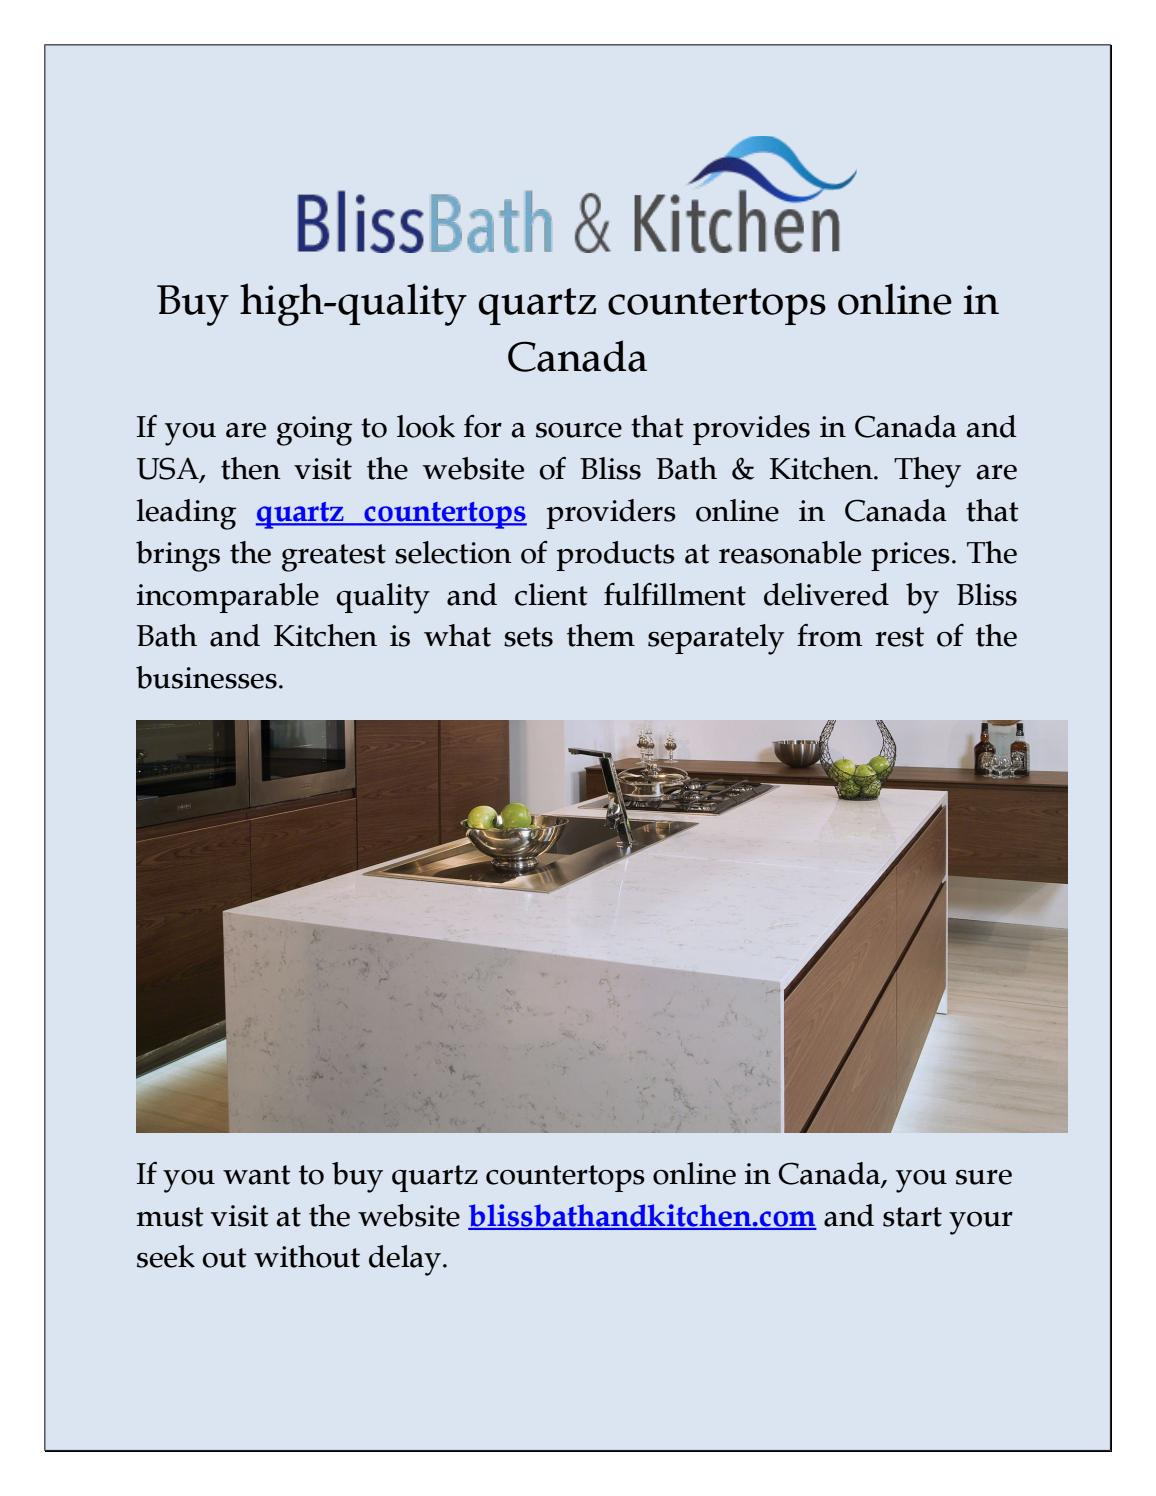 Quartz Countertop Prices Canada Buy High Quality Quartz Countertops Online In Canada By Bliss Bath